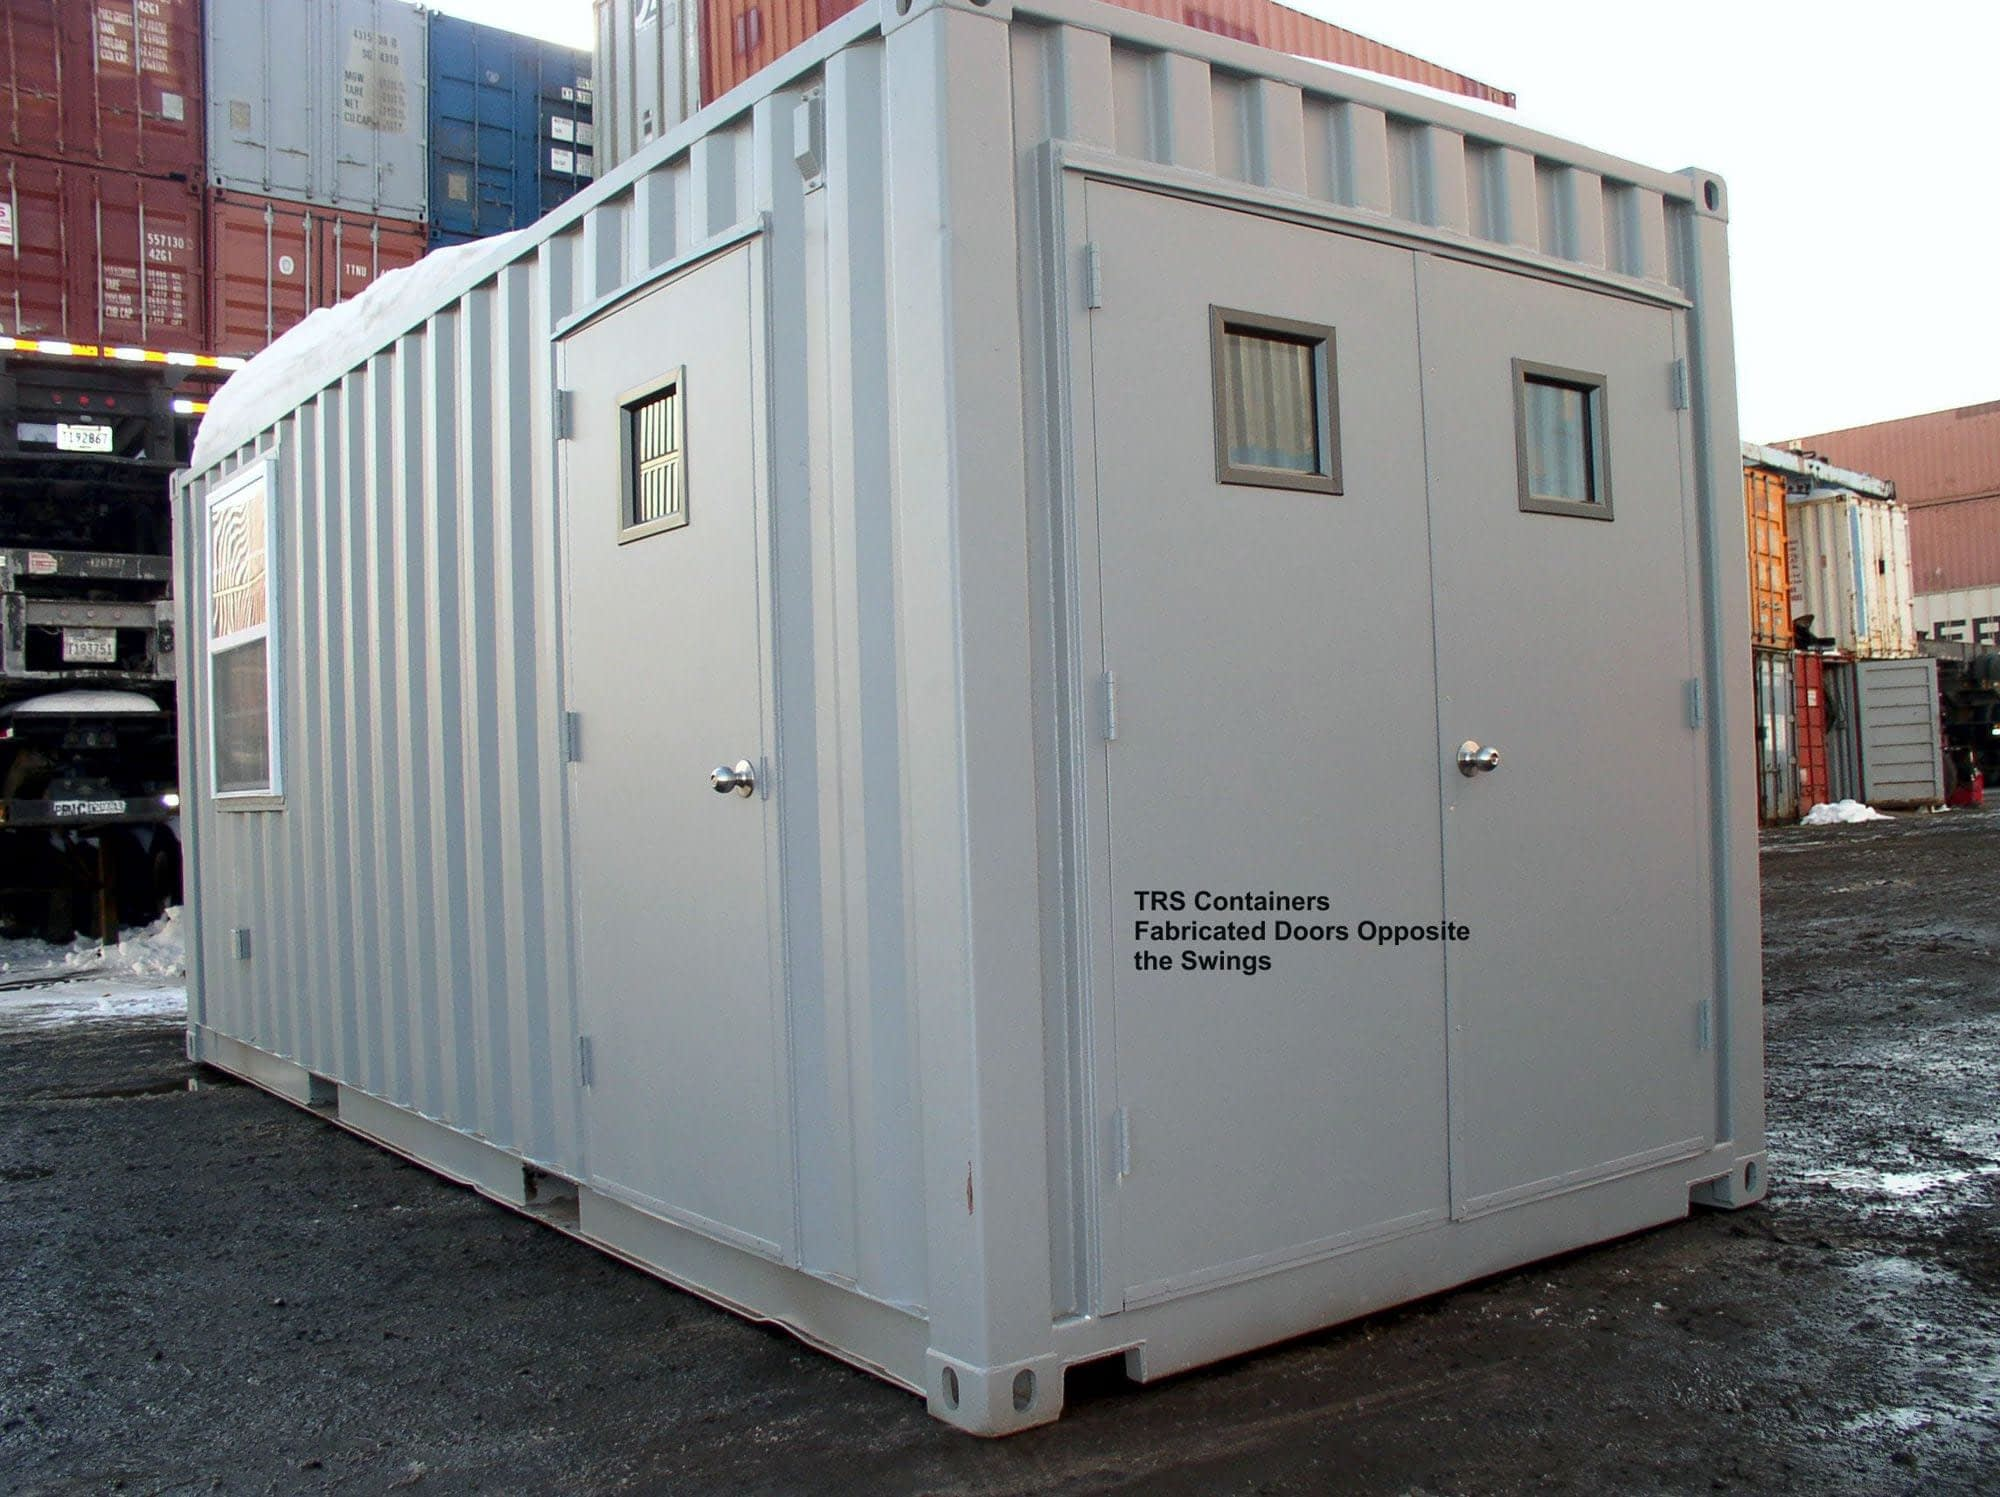 TRS Containers sells and modifies steel ISO cargo containers with additional doors